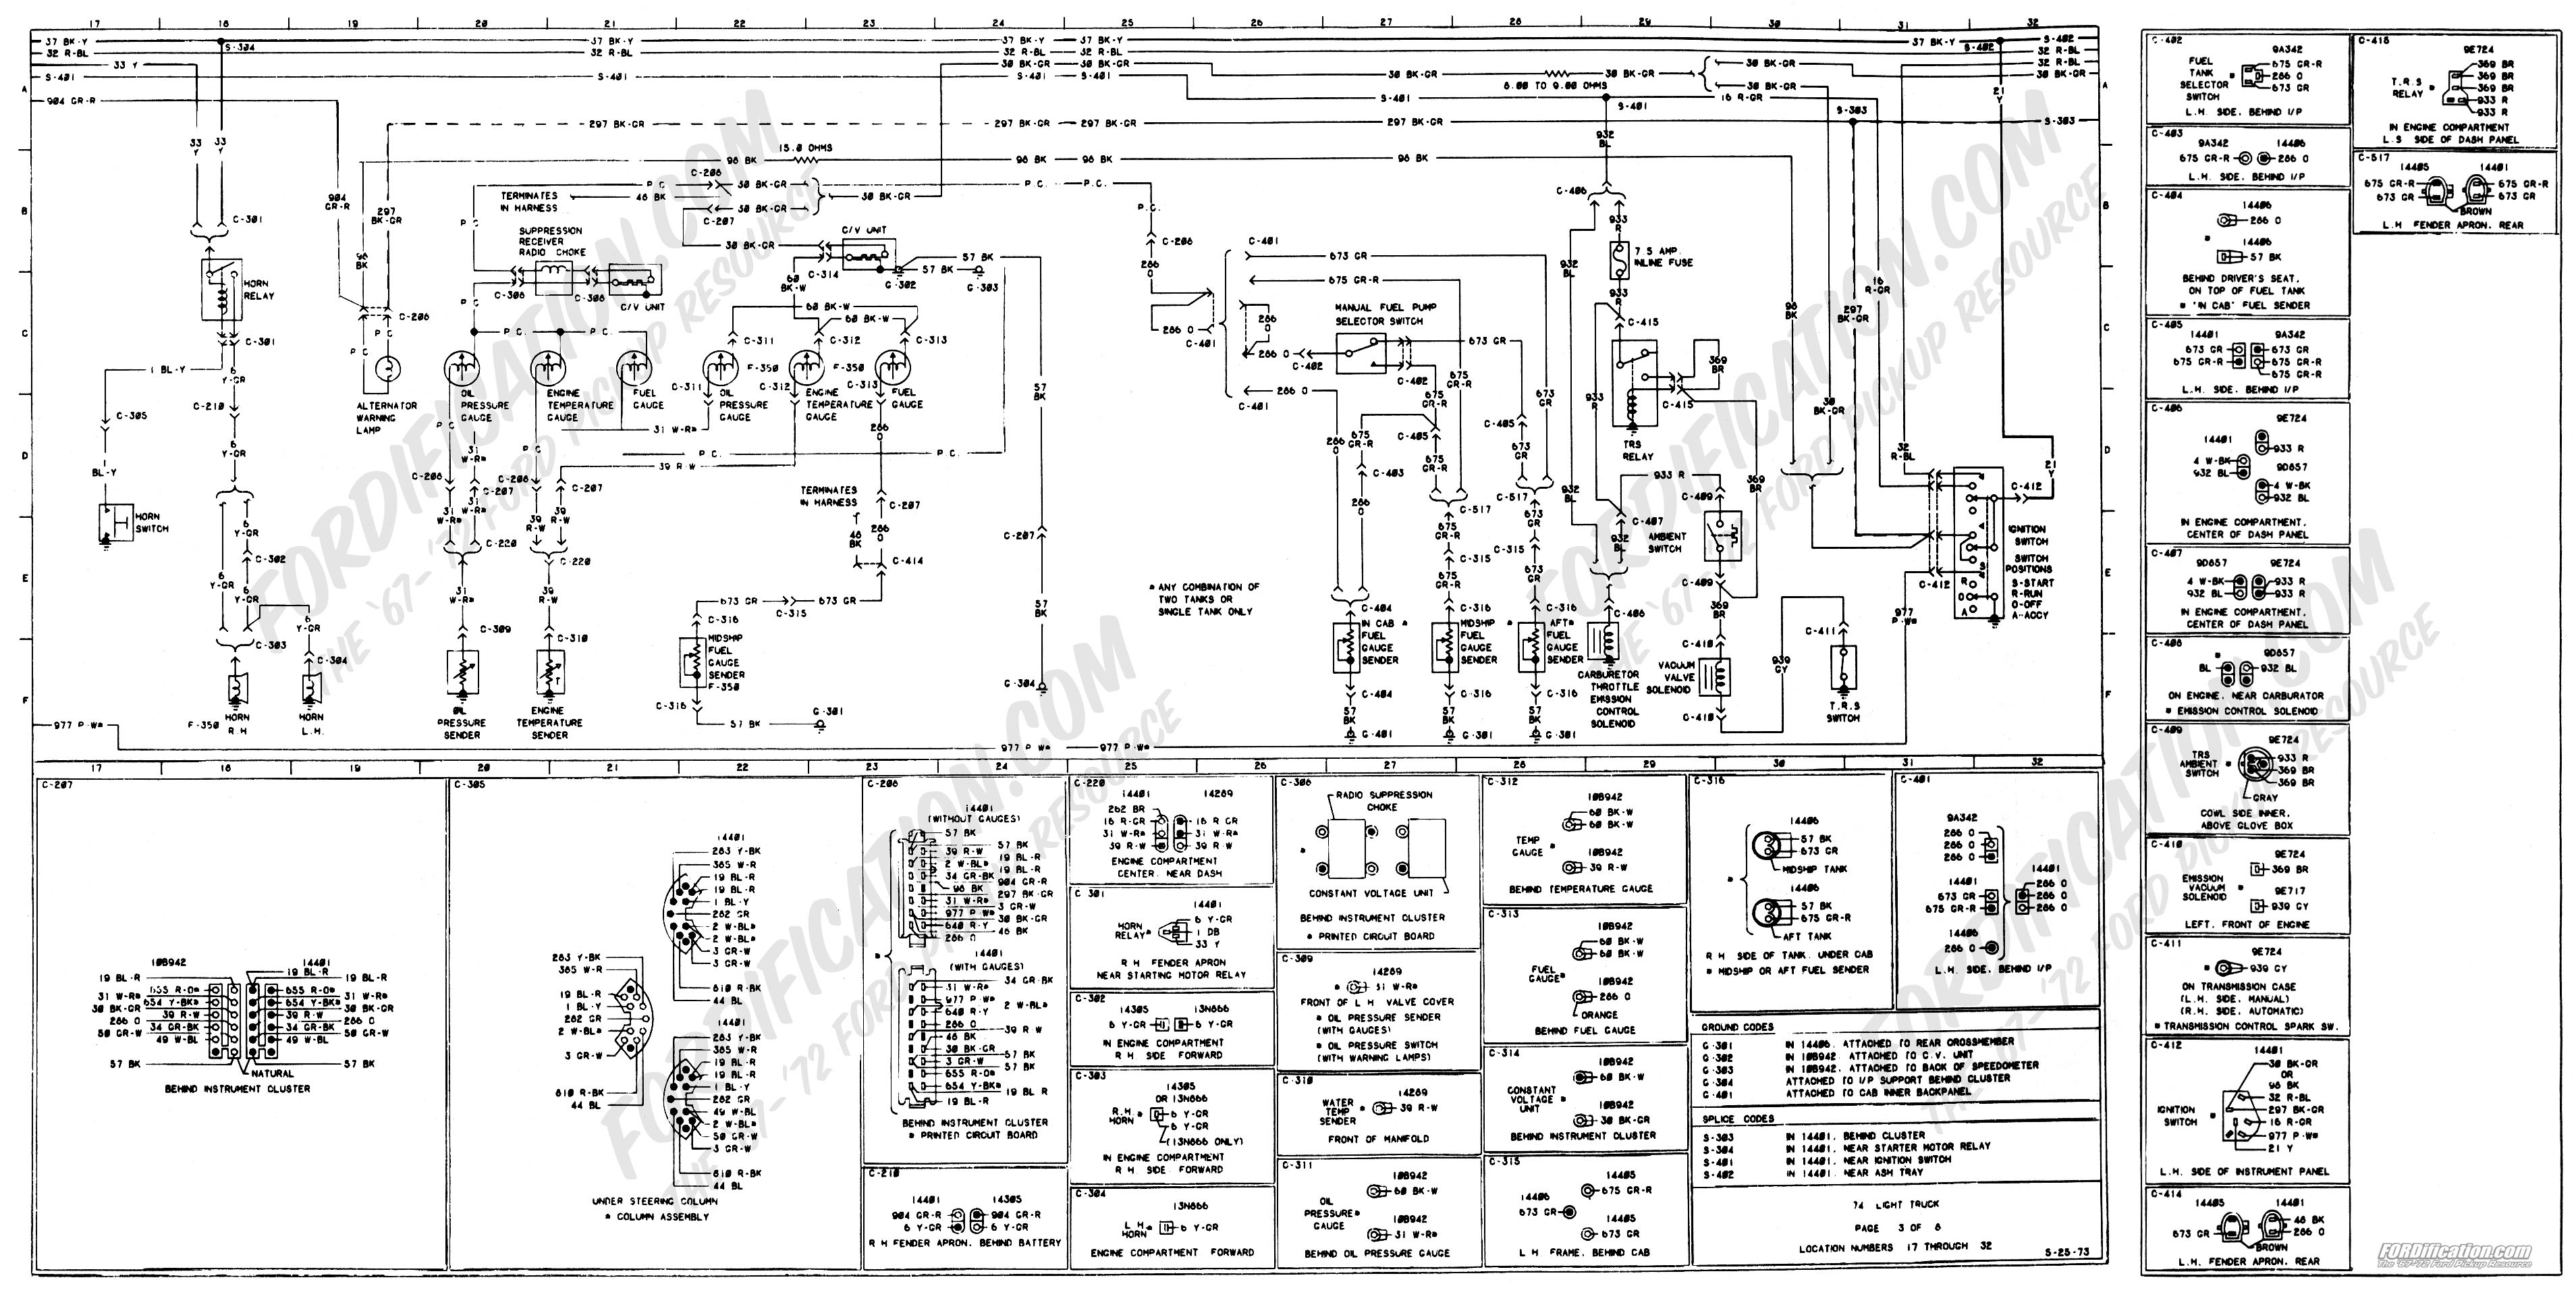 07 ford ranger radio wiring diagram animal skull 1973-1979 truck diagrams & schematics ...